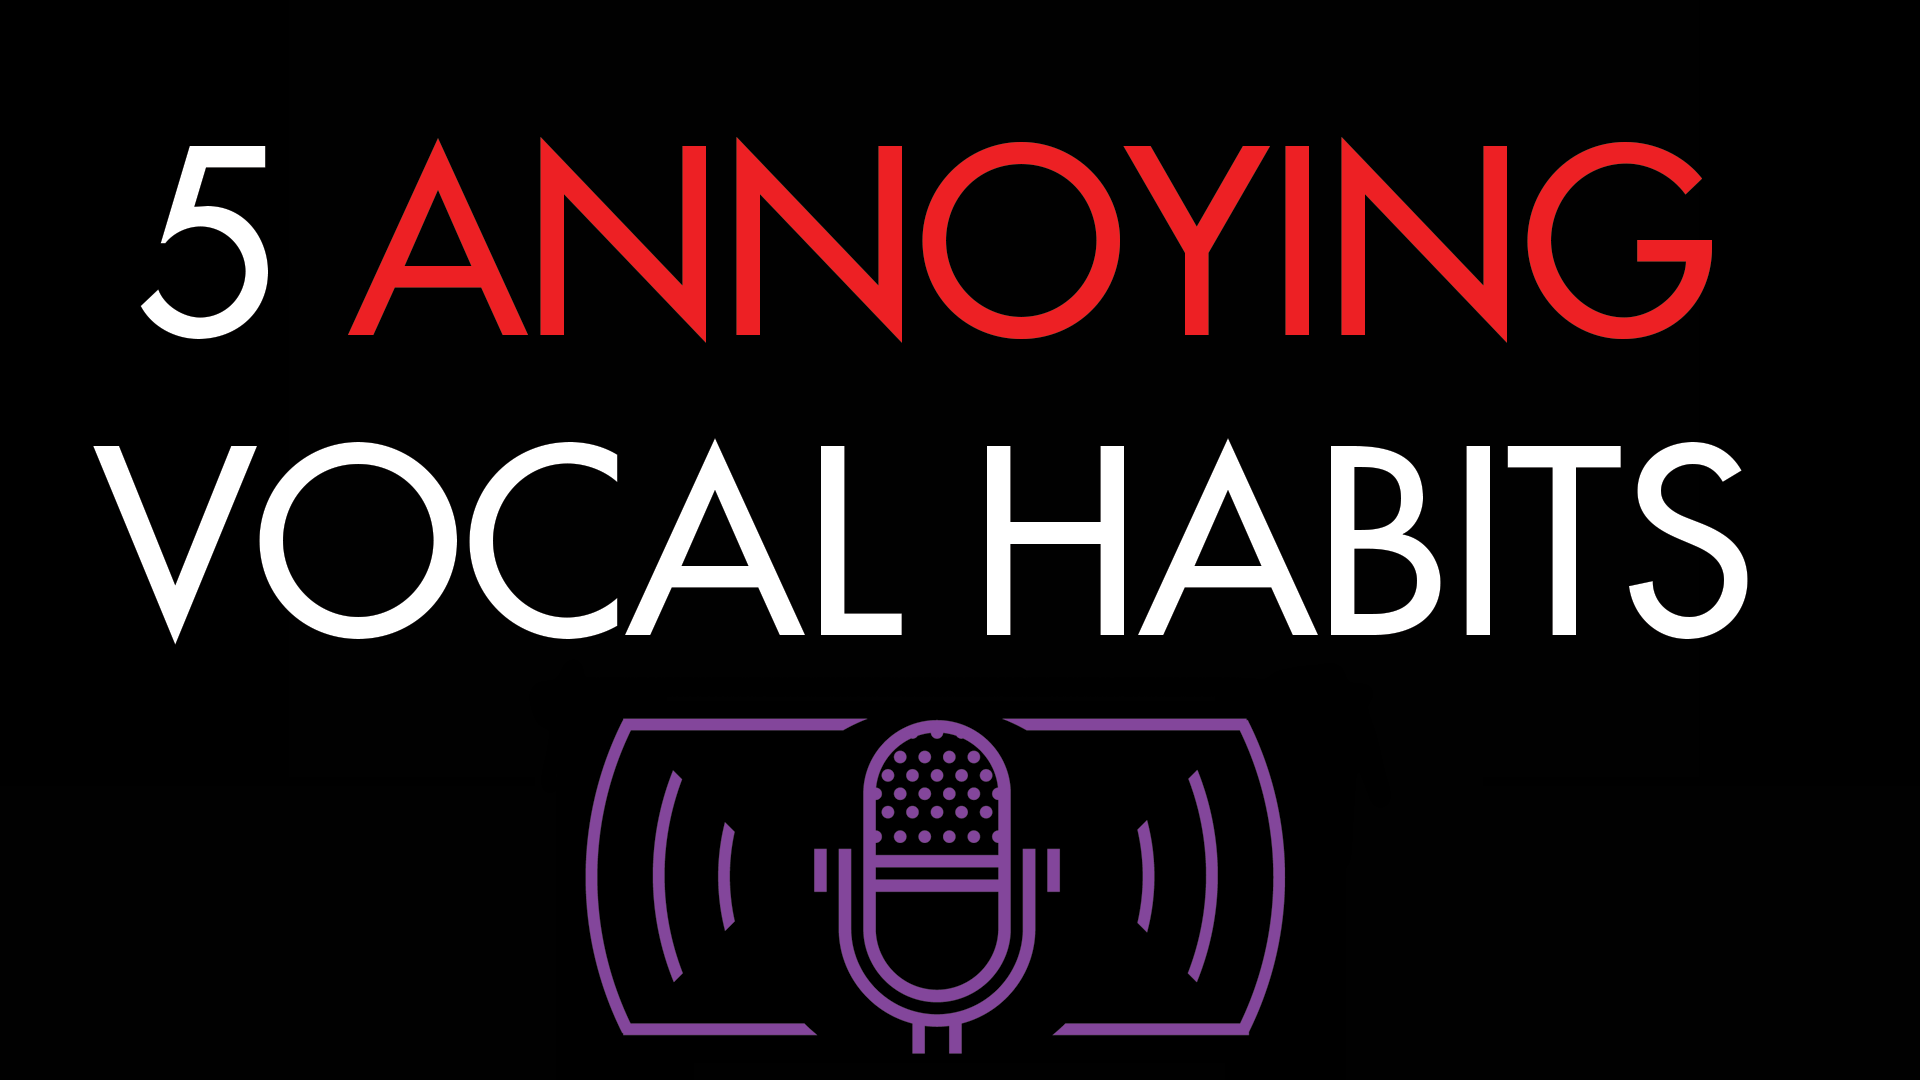 5 ANNOYING VOCAL HABITS